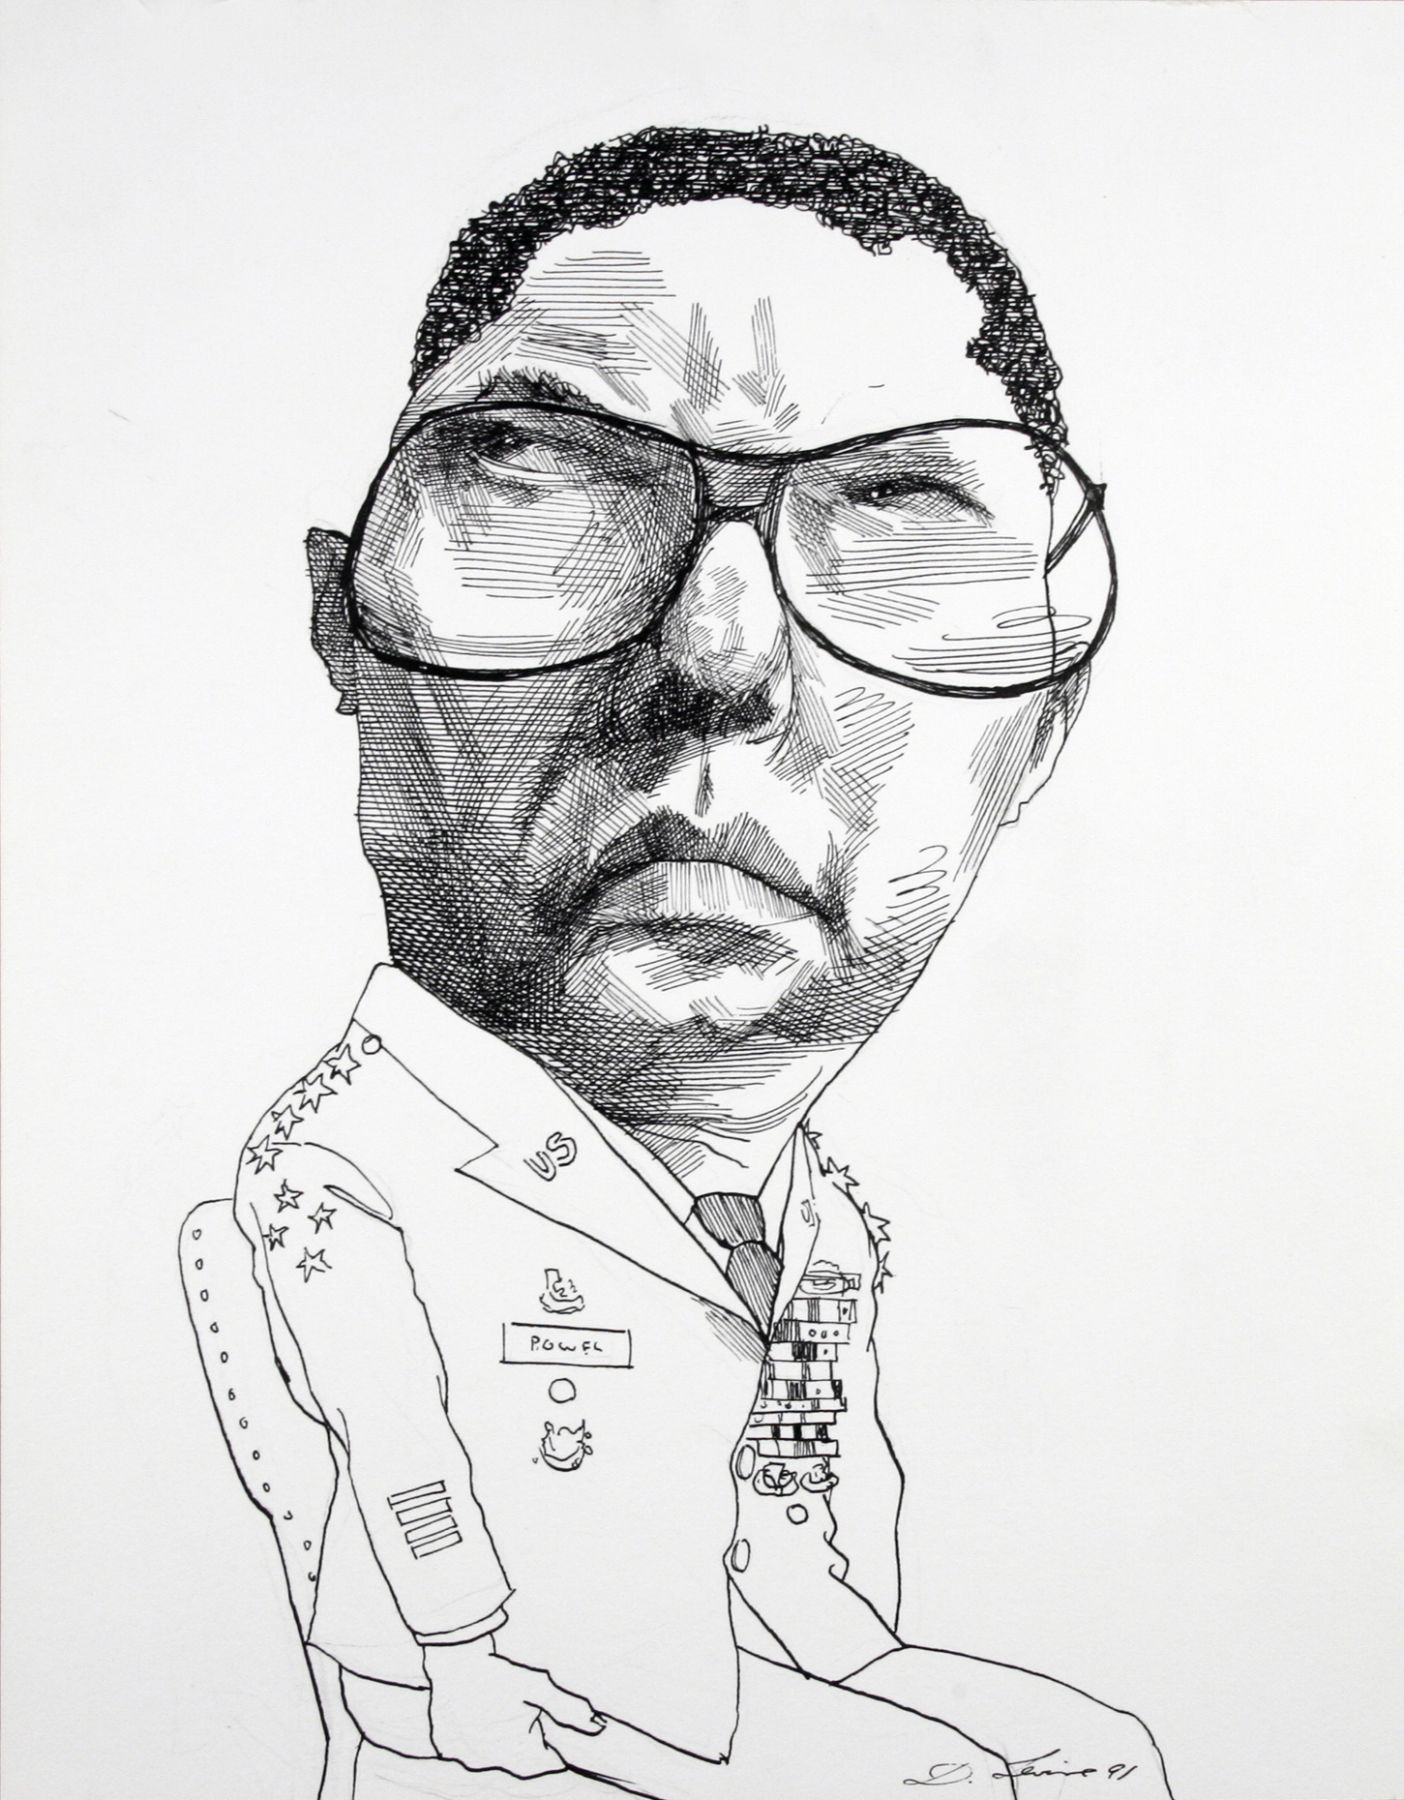 David Levine, Gen. Colin Powell, 1991, ink on paper, 14 x 11 inches